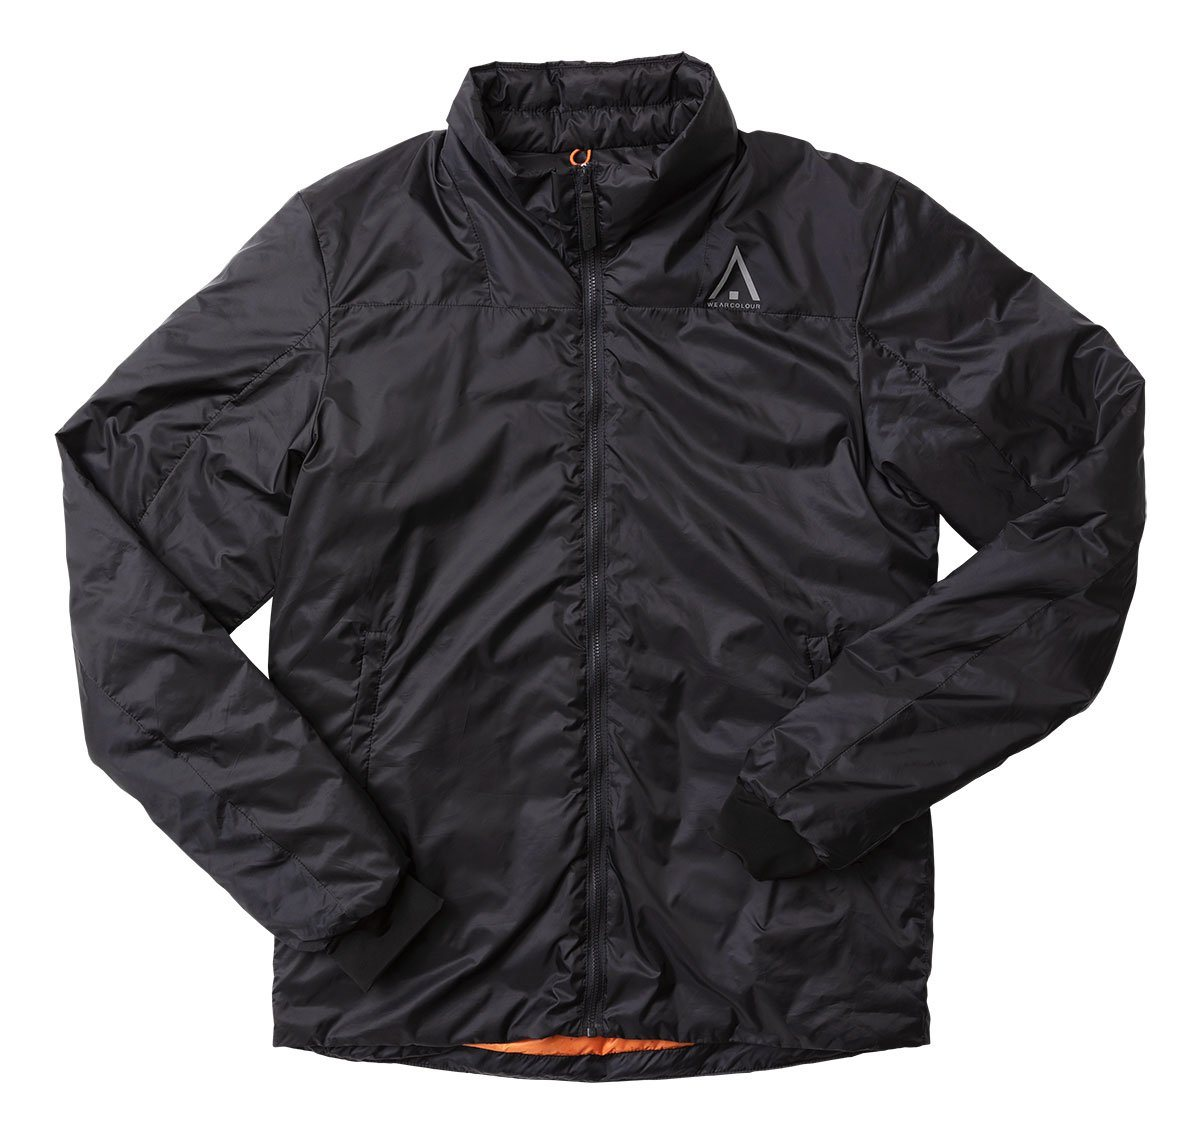 wearcolour Wearcolour heat jacket 2019 på blacksnow.dk